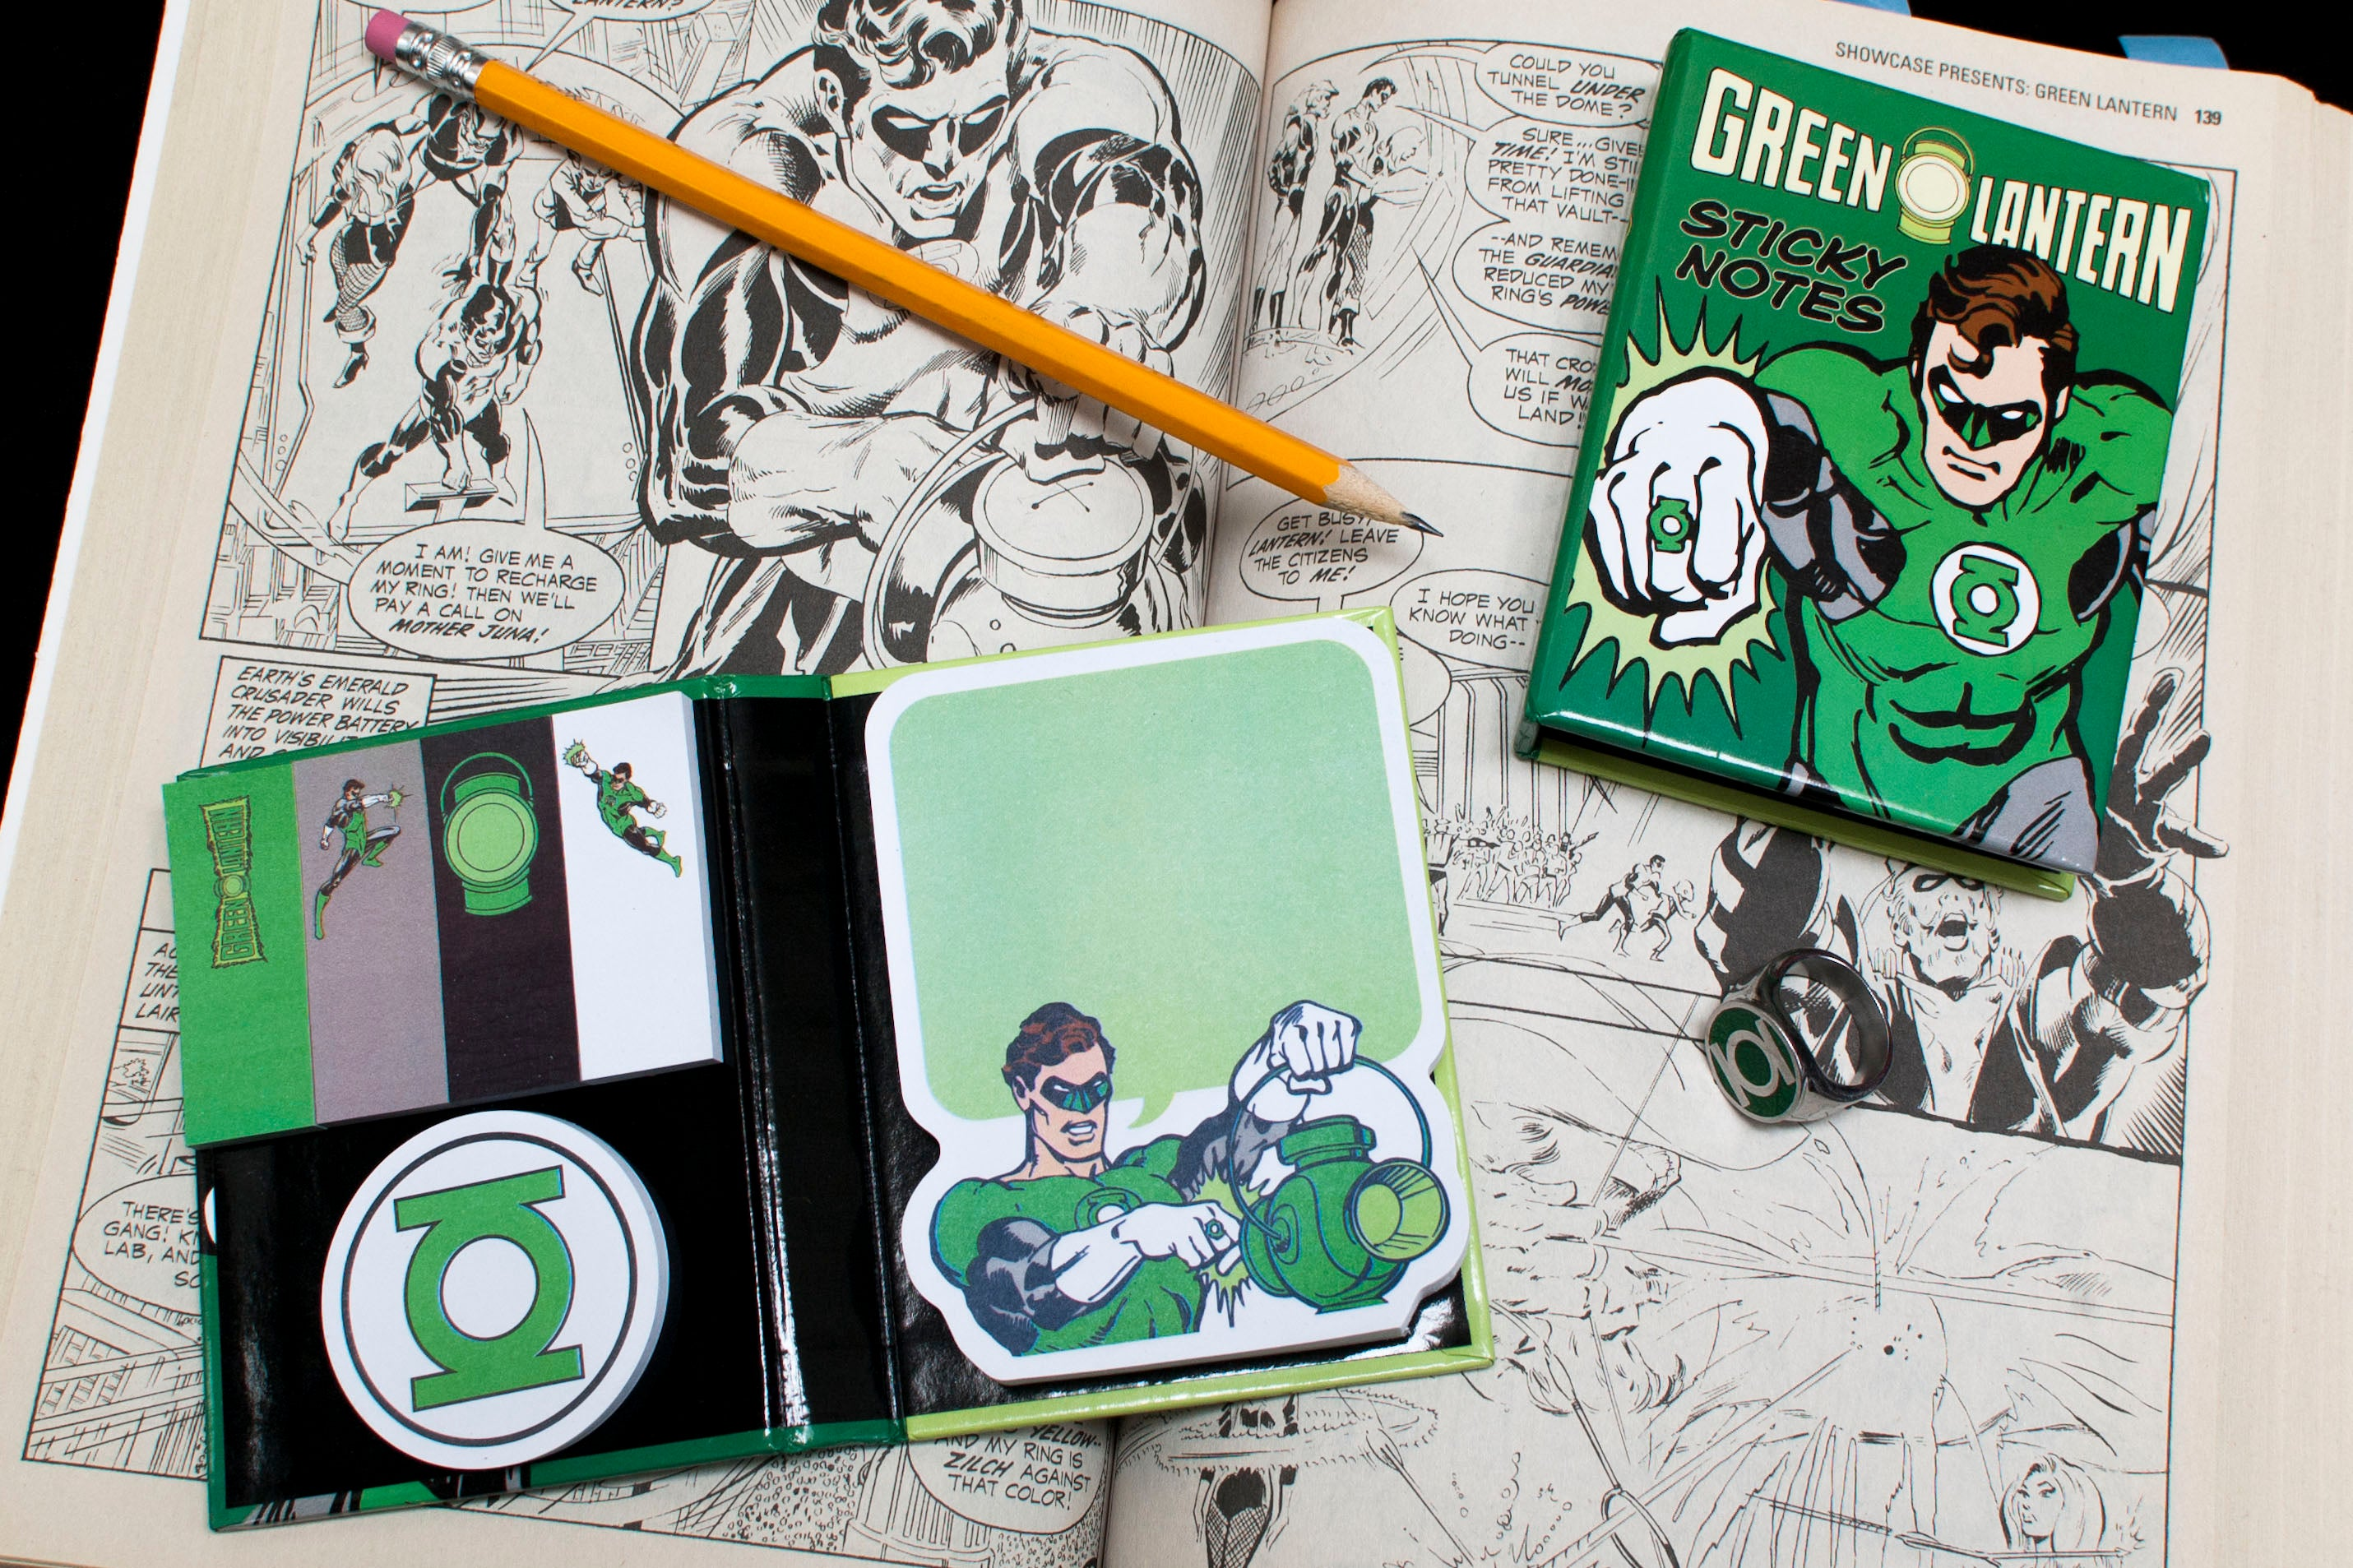 Green Lantern - The Unemployed Philosophers Guild